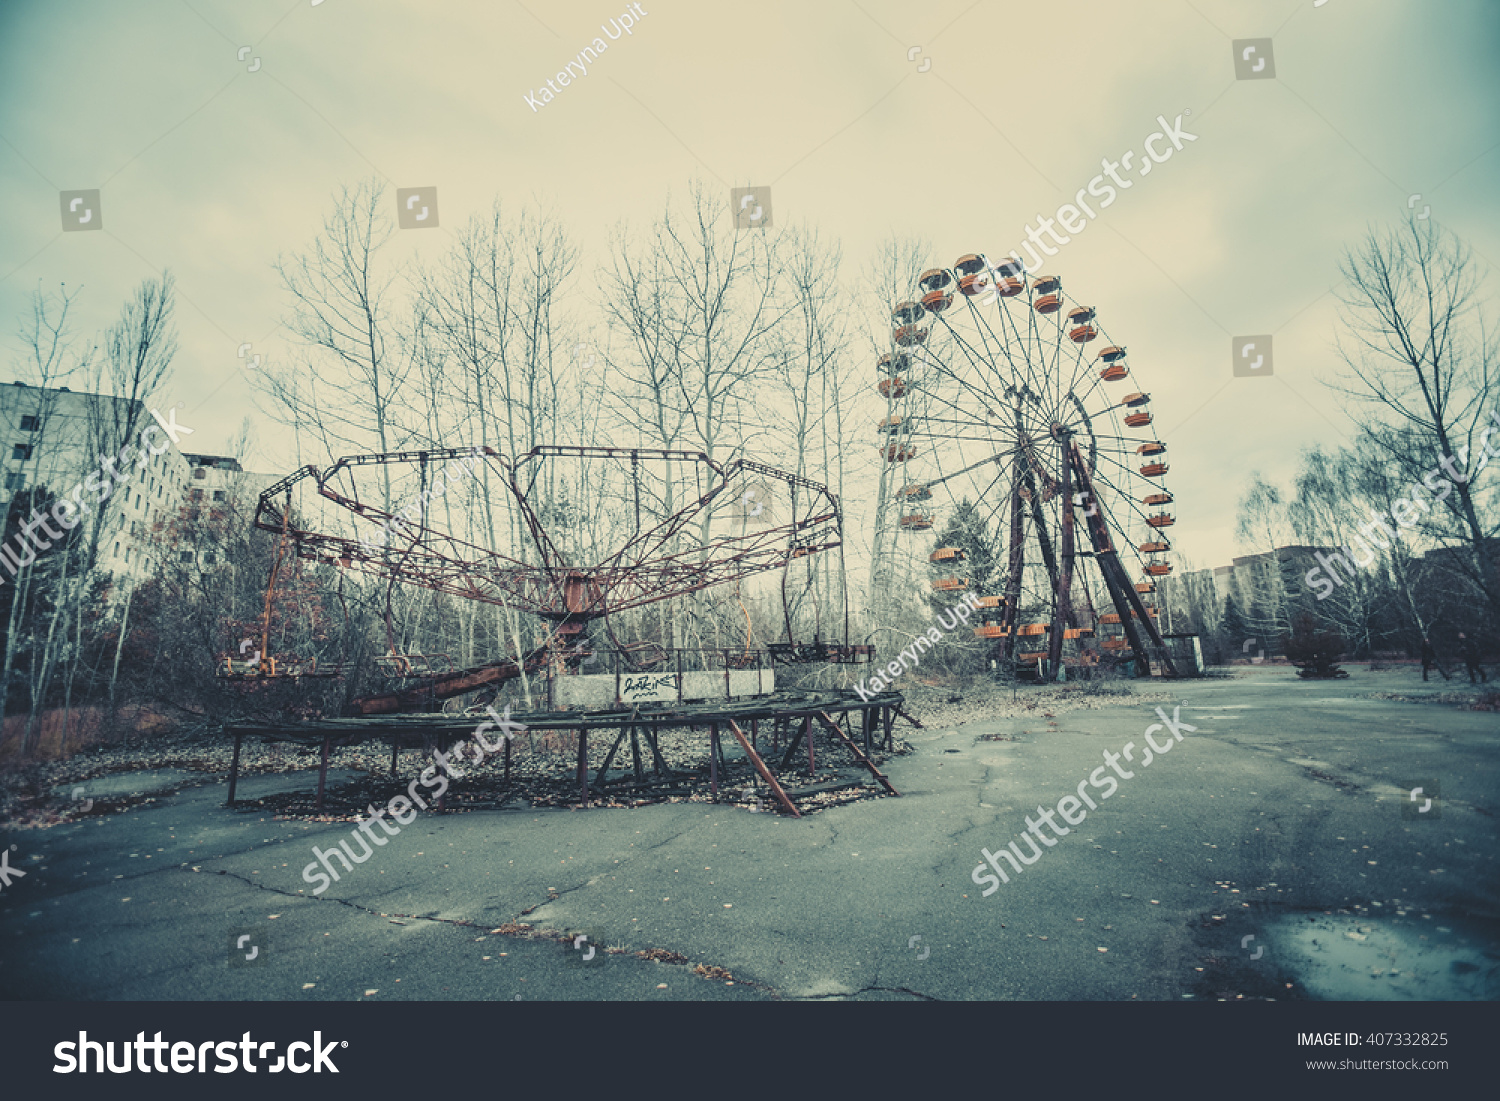 Abandoned carousel and abandoned ferris  at an amusement park in the center of the city of Pripyat, the Chernobyl disaster, the exclusion zone, a ghost town #407332825